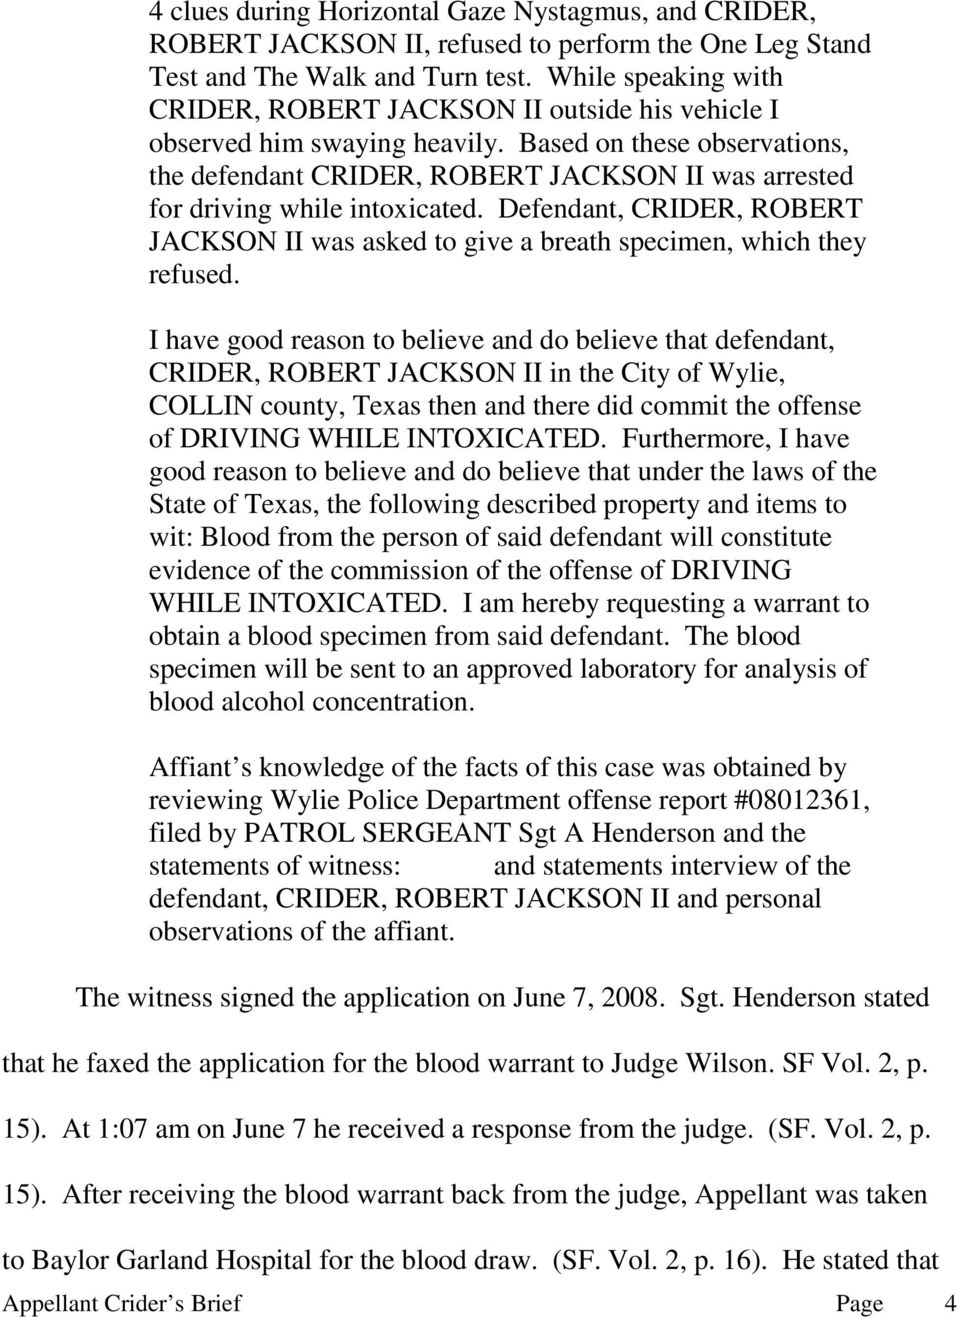 Based on these observations, the defendant CRIDER, ROBERT JACKSON II was arrested for driving while intoxicated.